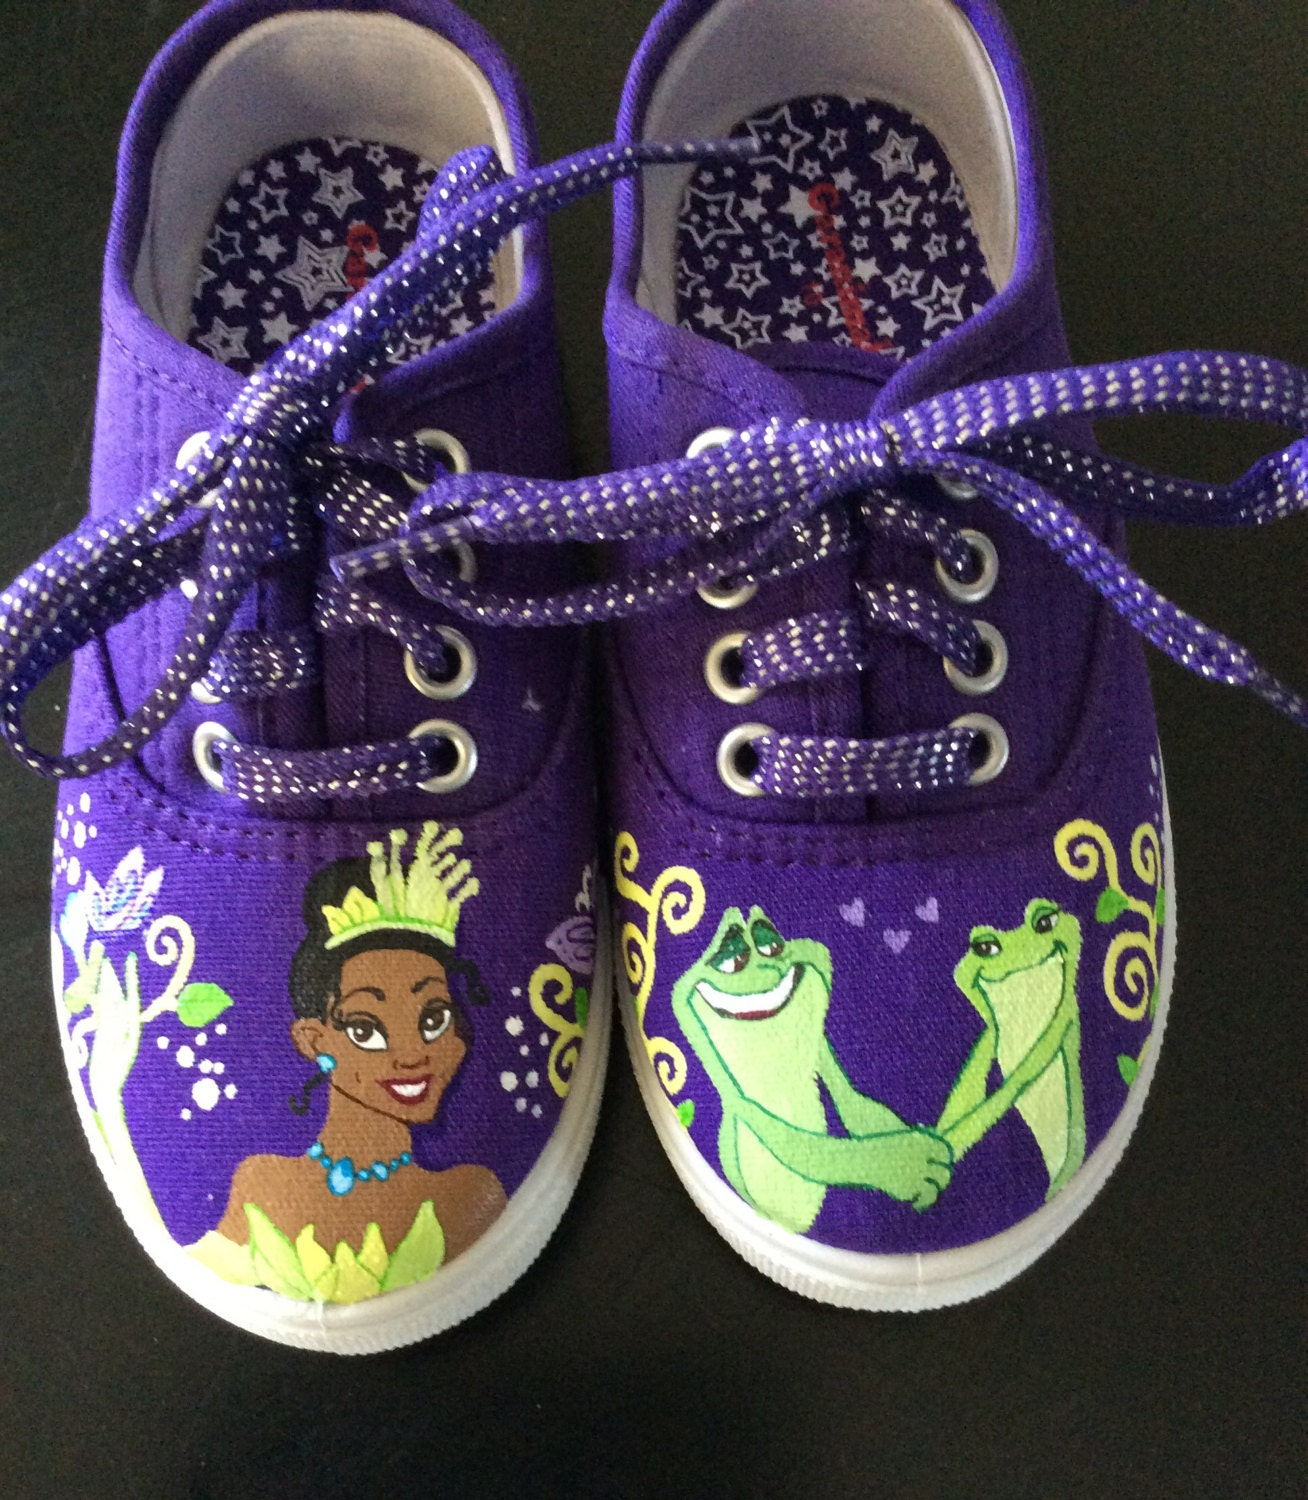 Princess Tiana Shoes: Princess Tiana Girl's Shoes Birthday Gifts By